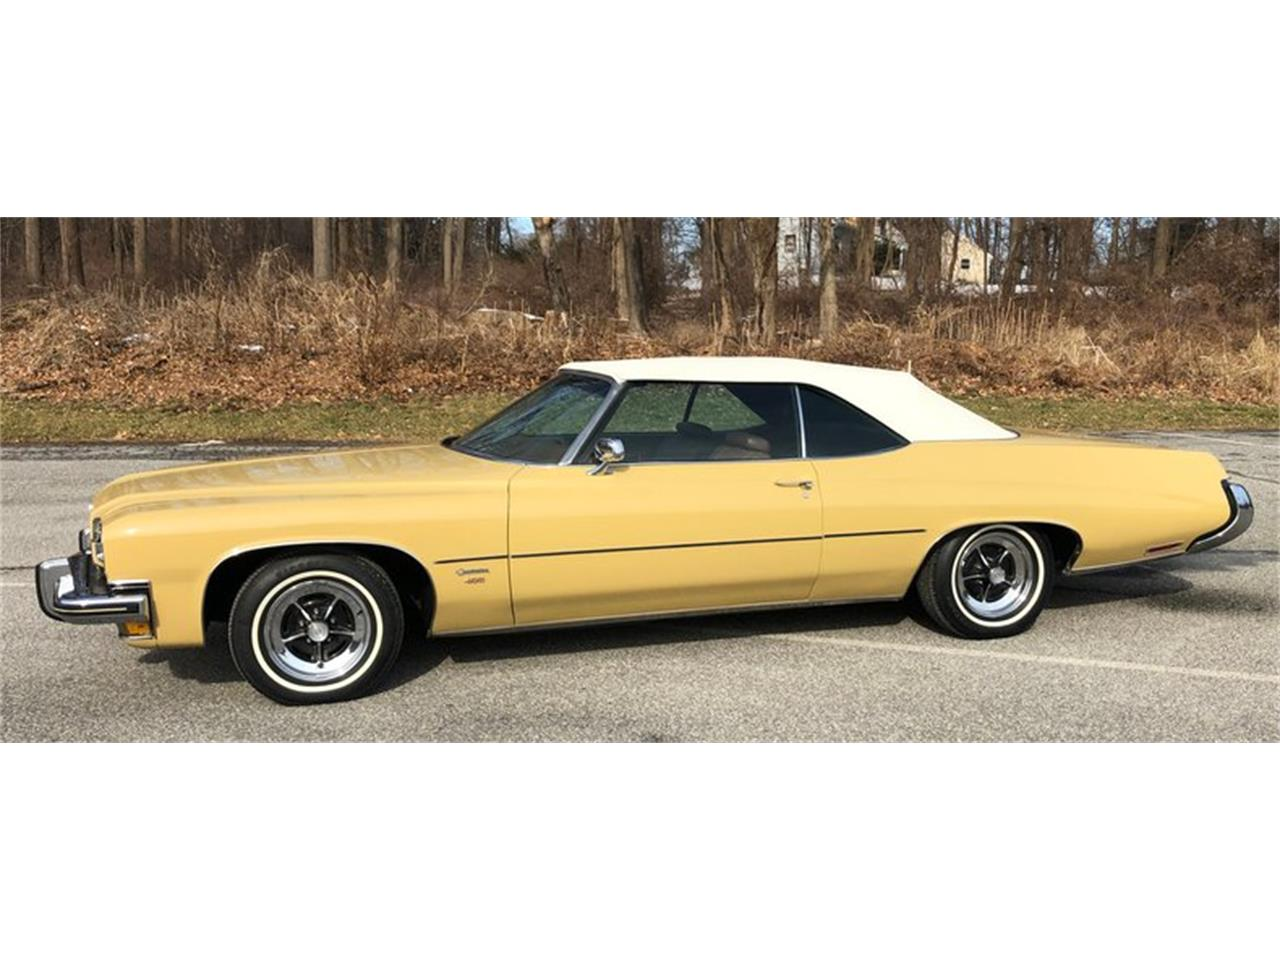 Large Picture of Classic '73 Buick Centurion located in West Chester Pennsylvania - $21,500.00 Offered by Connors Motorcar Company - PBP7